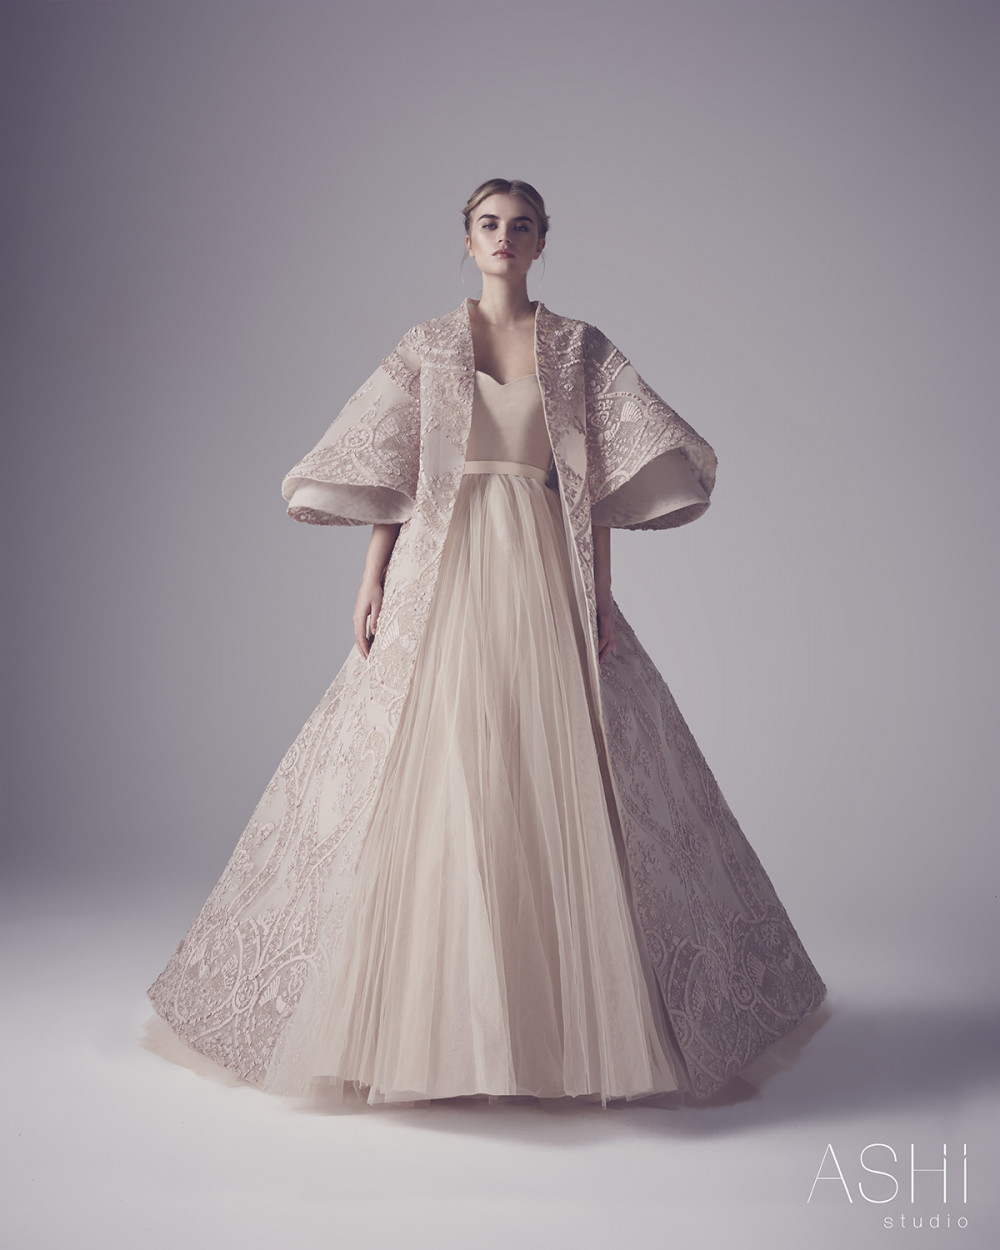 Ashi Studio_Spring Summer 2016 Couture Collection_BellaNaija Weddings_Ashi_14-133_large